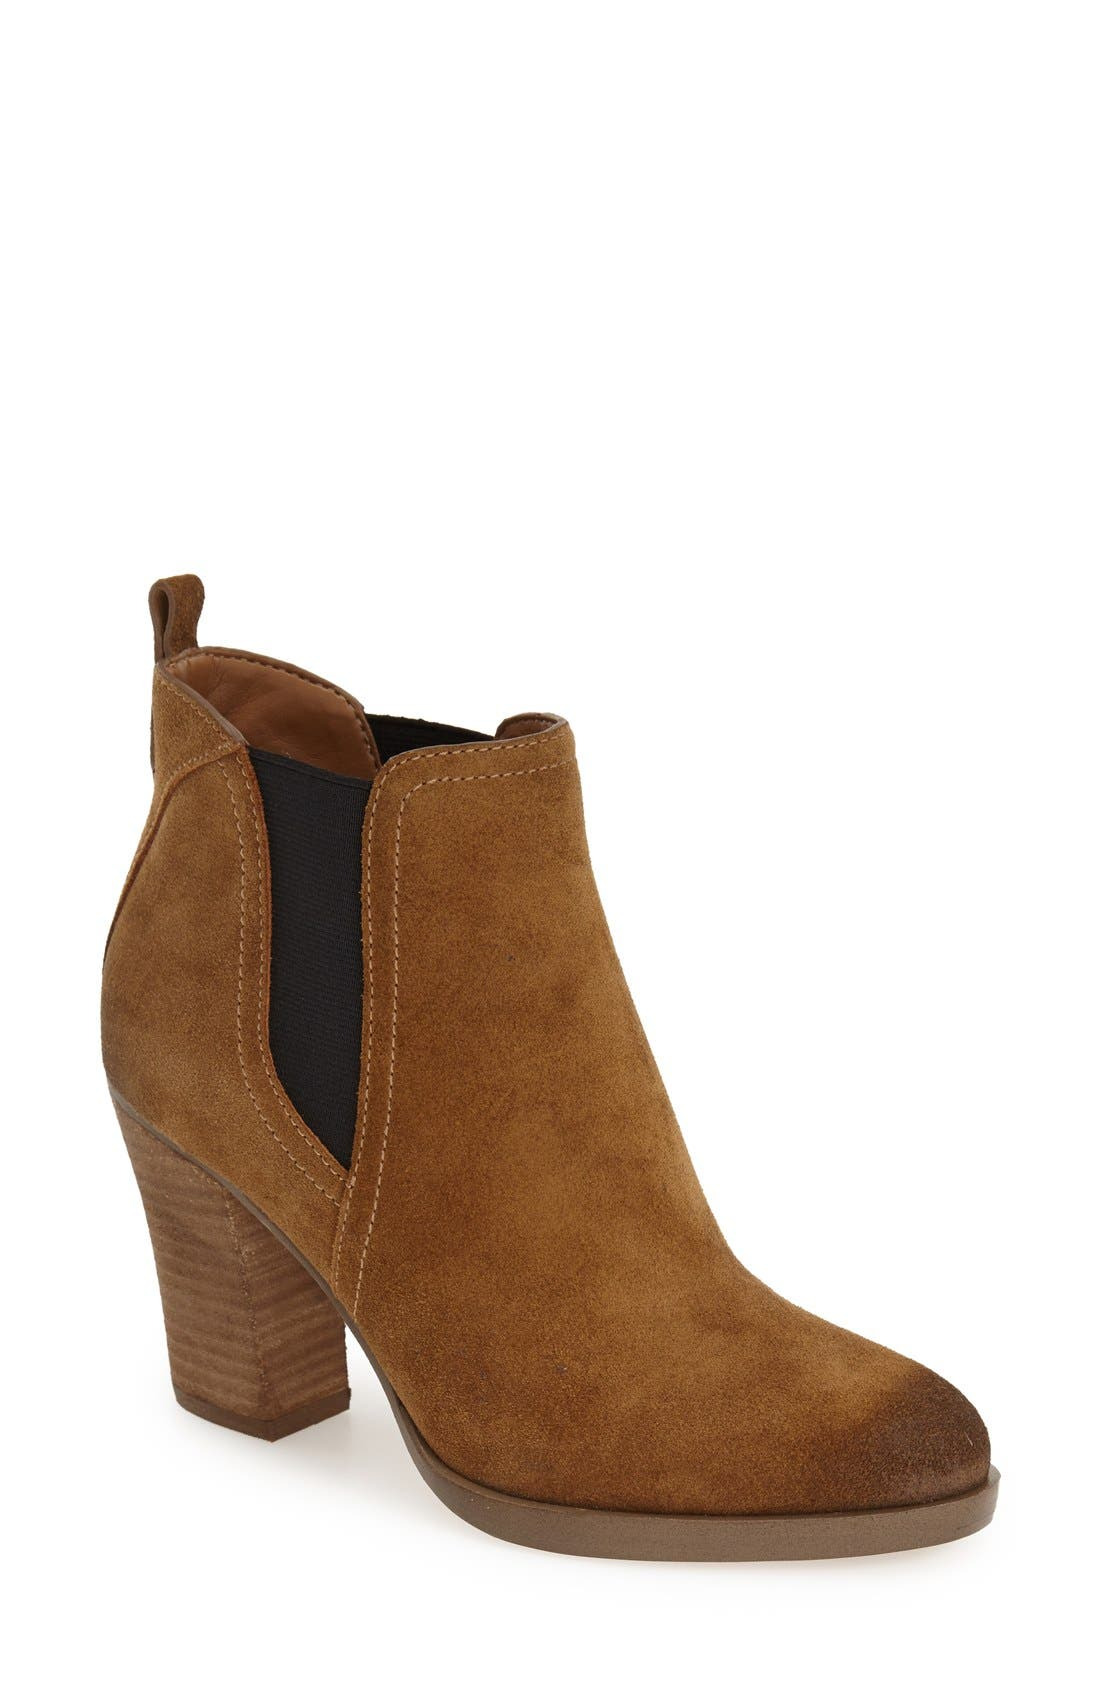 Main Image - Marc Fisher LTD 'Mallory' Chelsea Boot (Women)